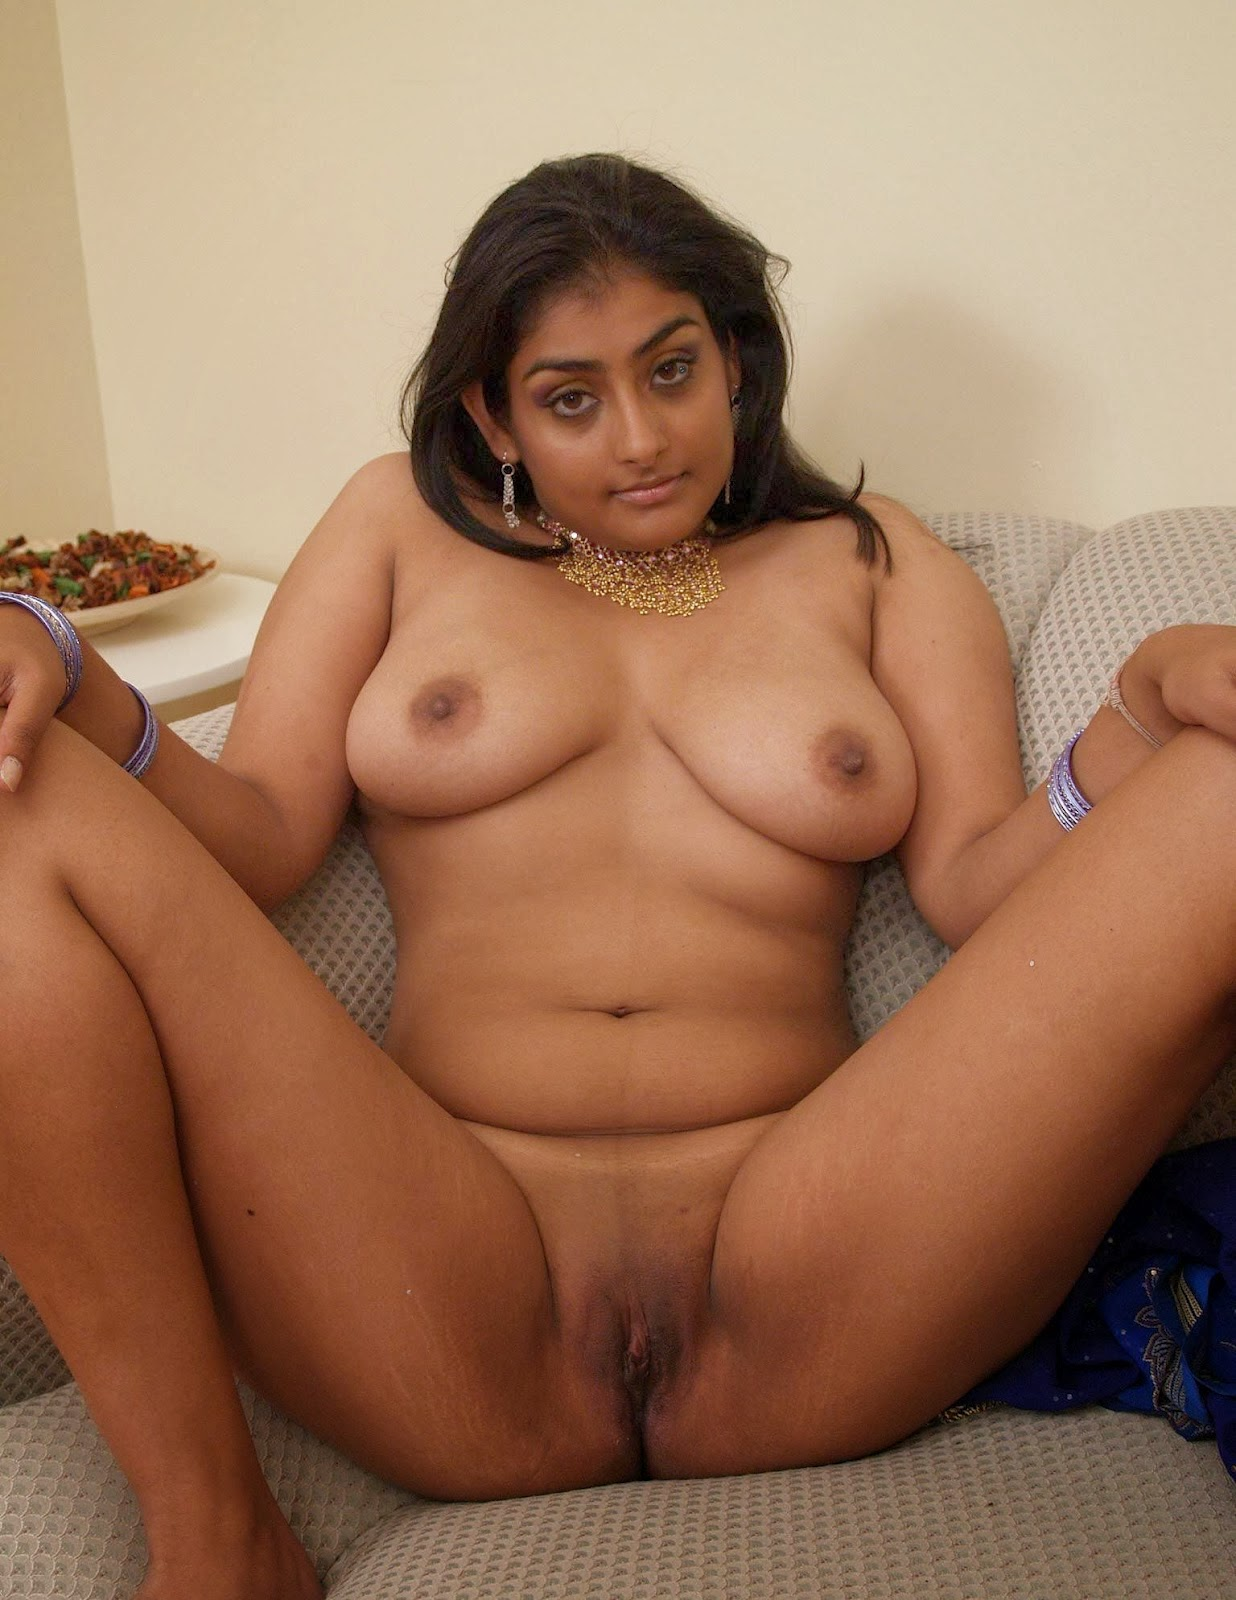 A bengali slut fucked in a 3some by indians 10